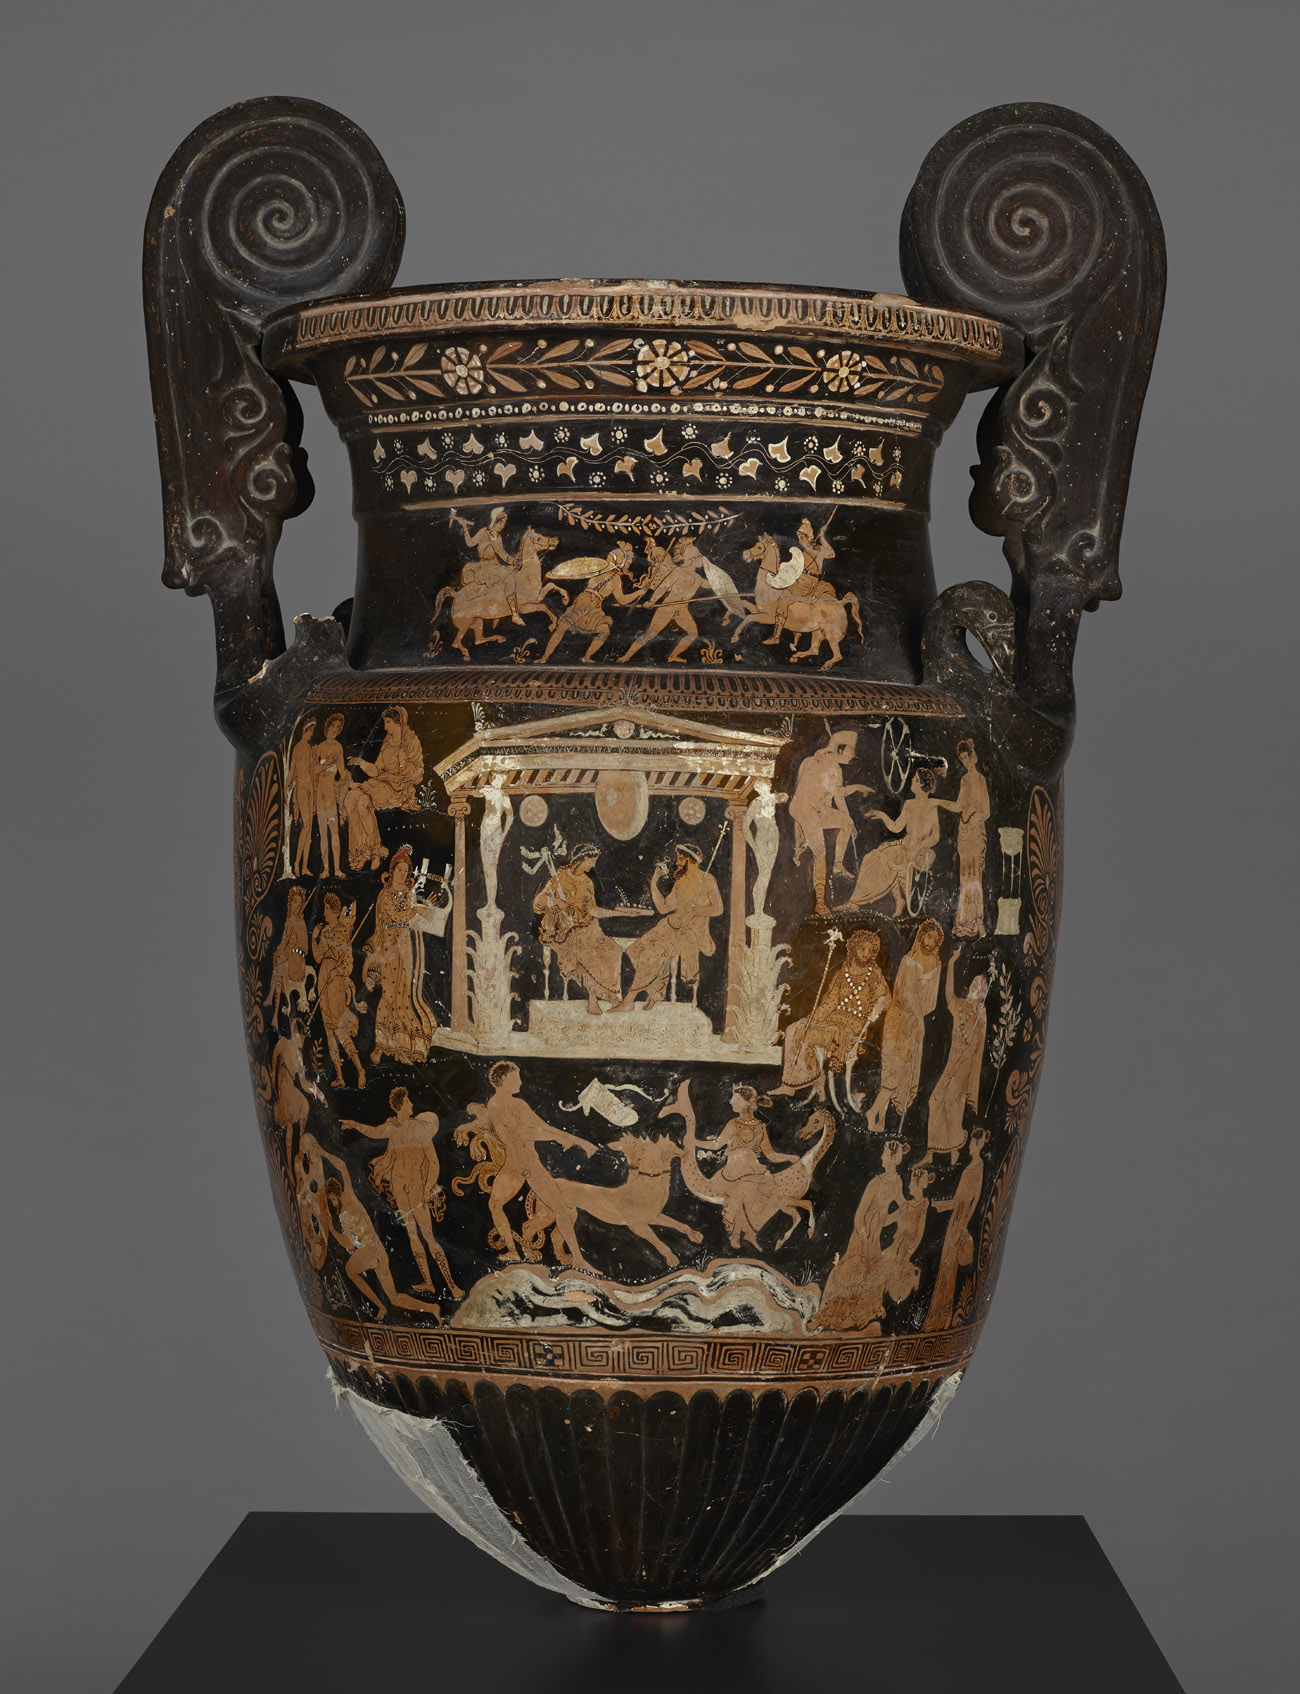 Colossal Krater from Altamura